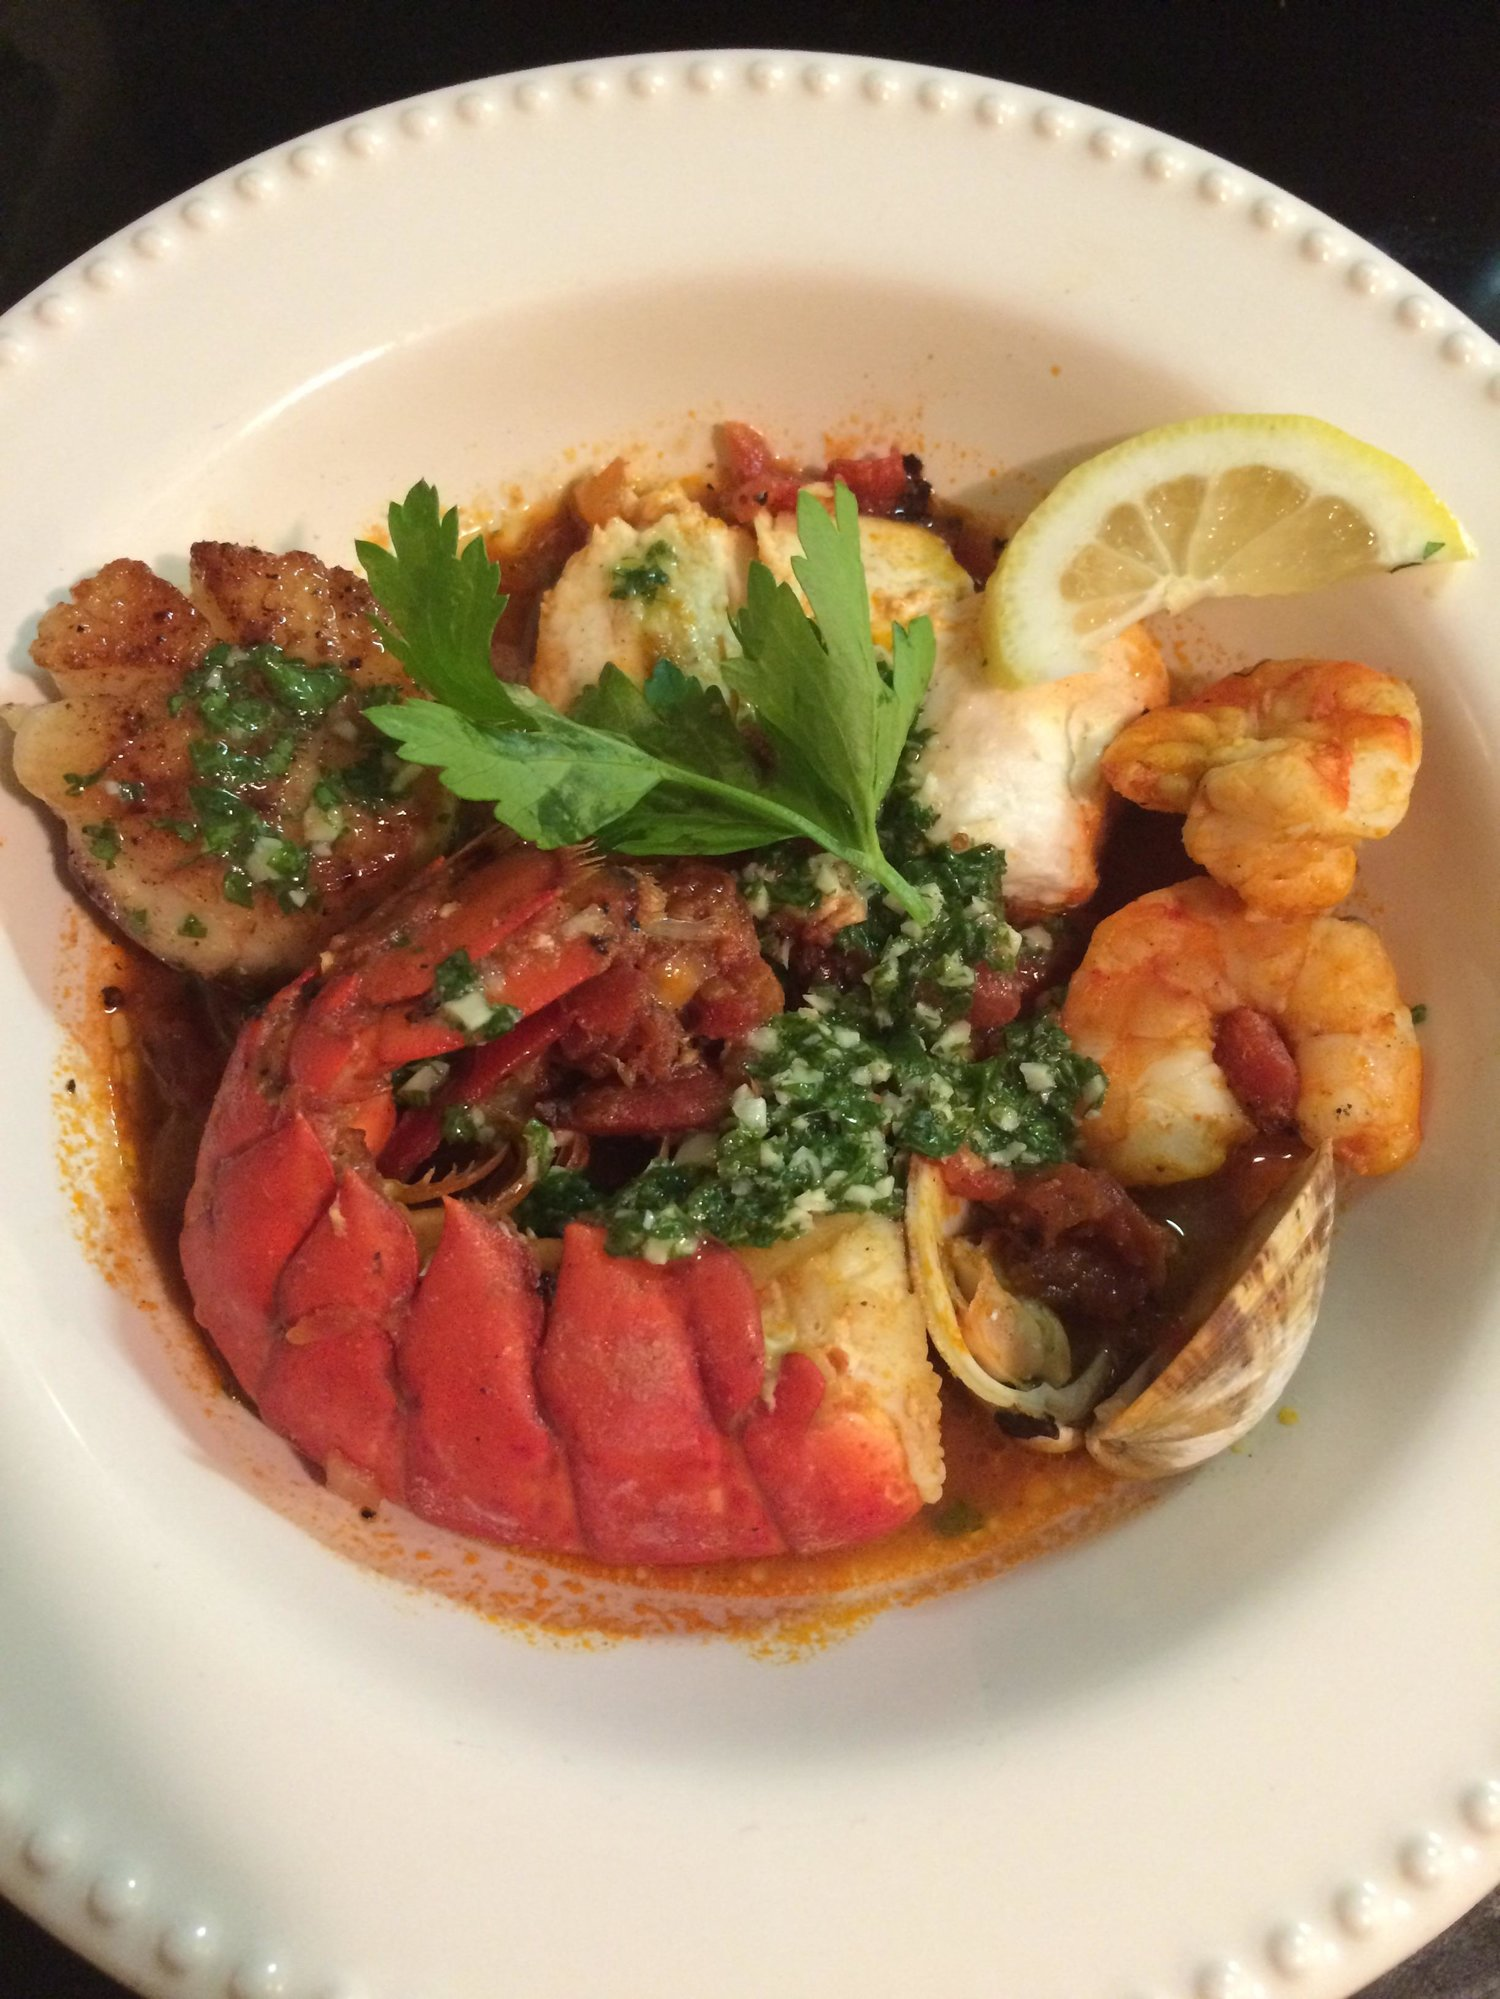 Another winner - seafood cook! — Big Green Egg - EGGhead Forum - The Ultimate Cooking Experience...